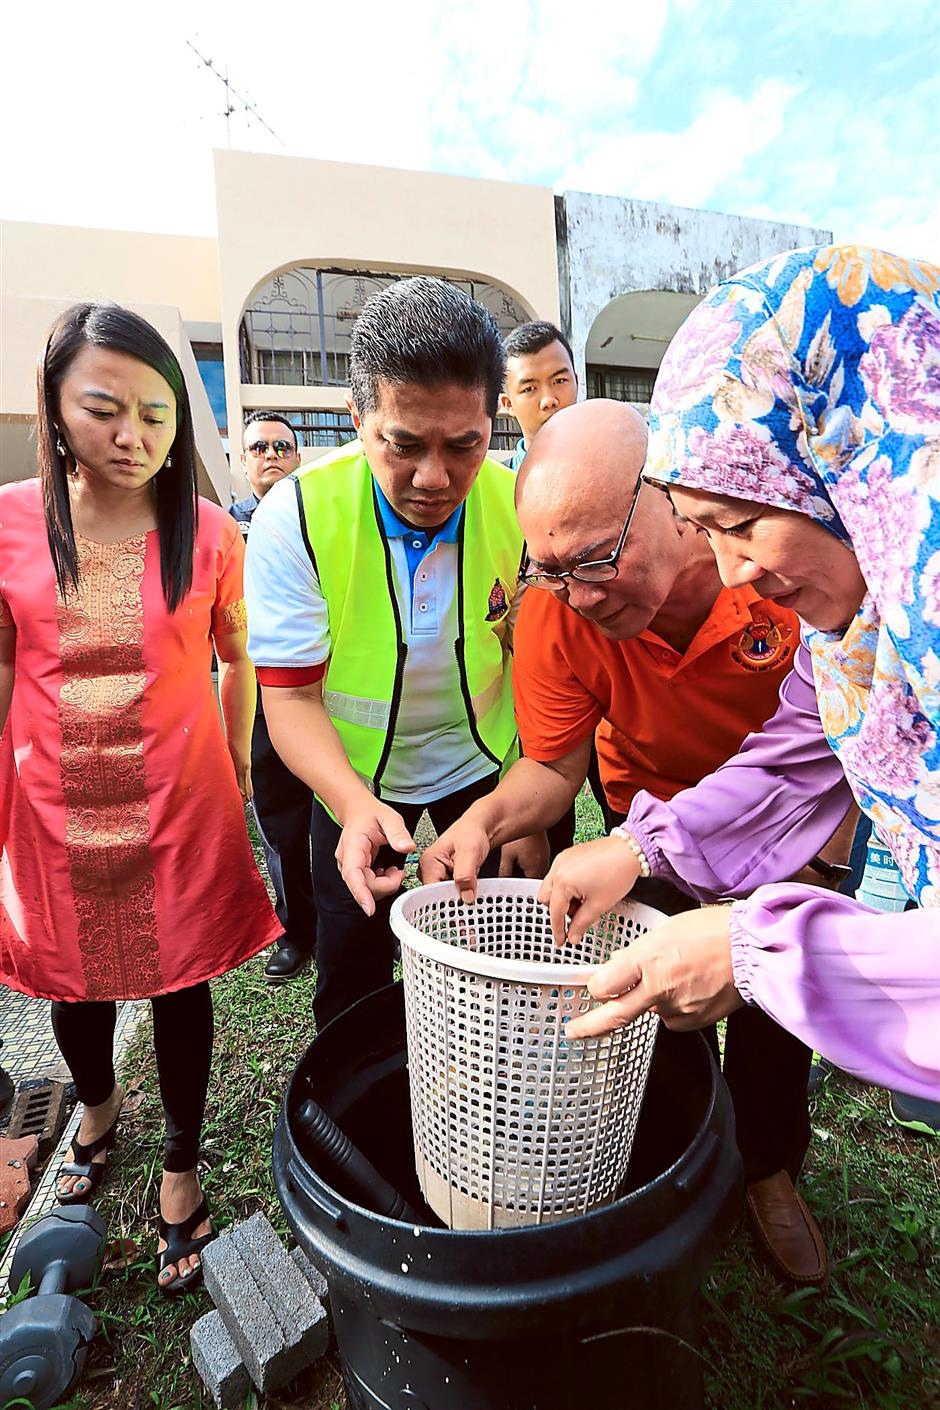 Spot check: Azmin (in vest) checking for mosquito larvae during the event. With him is Yeoh (left), Nor Hisham (third from left) and Dr Daroyah.